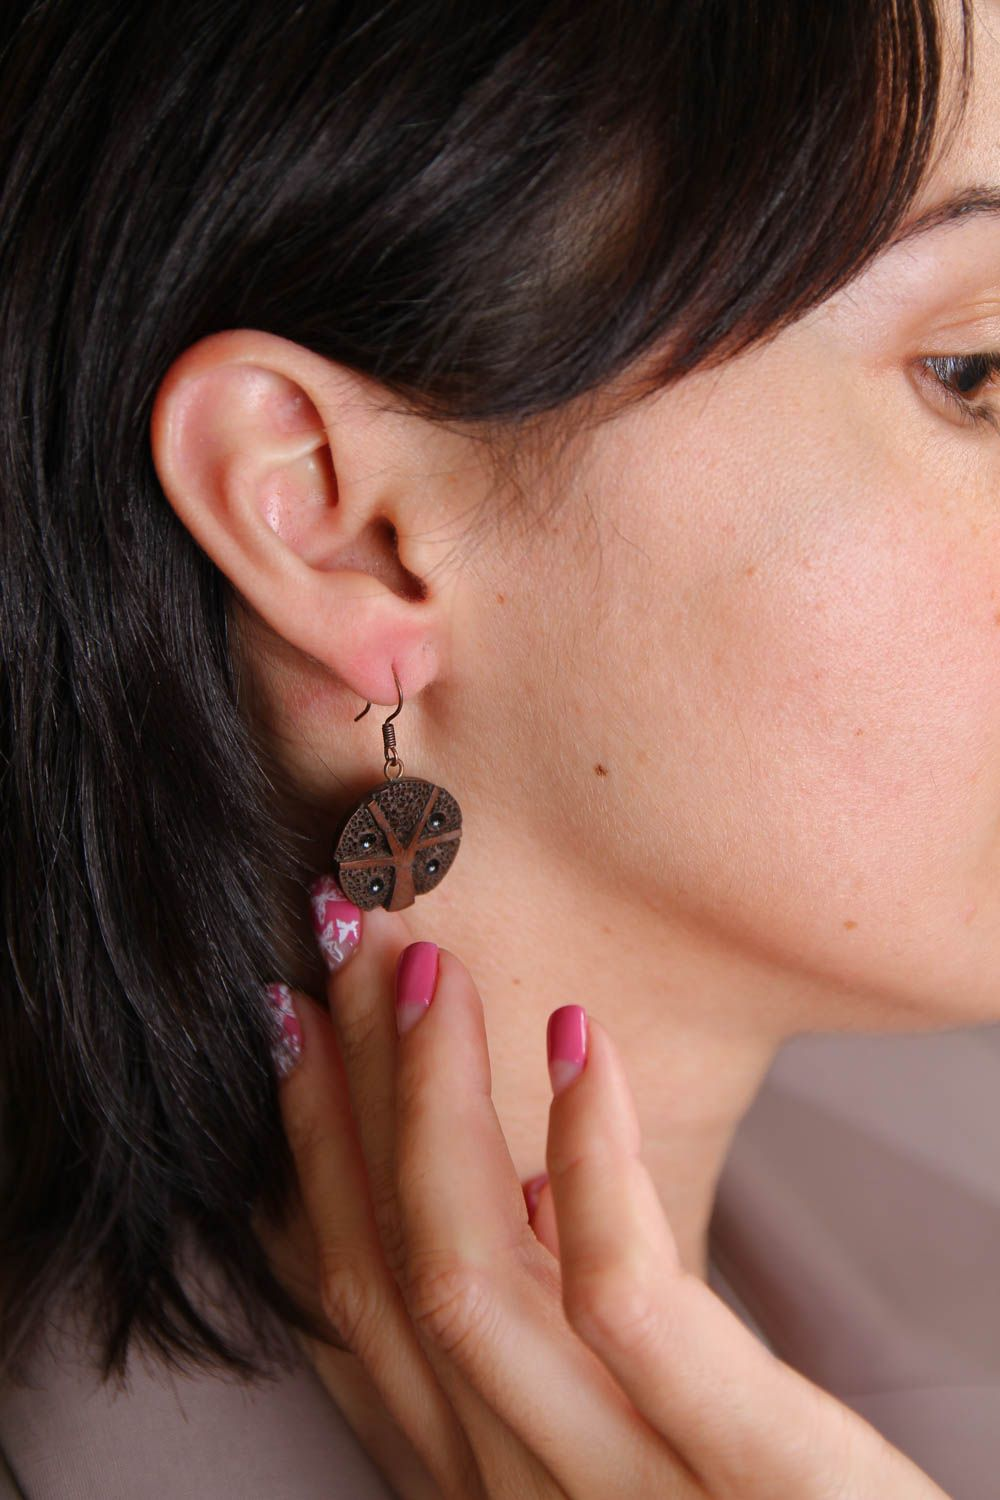 Ceramic jewelry handmade earrings gifts for women fashion accessories photo 5